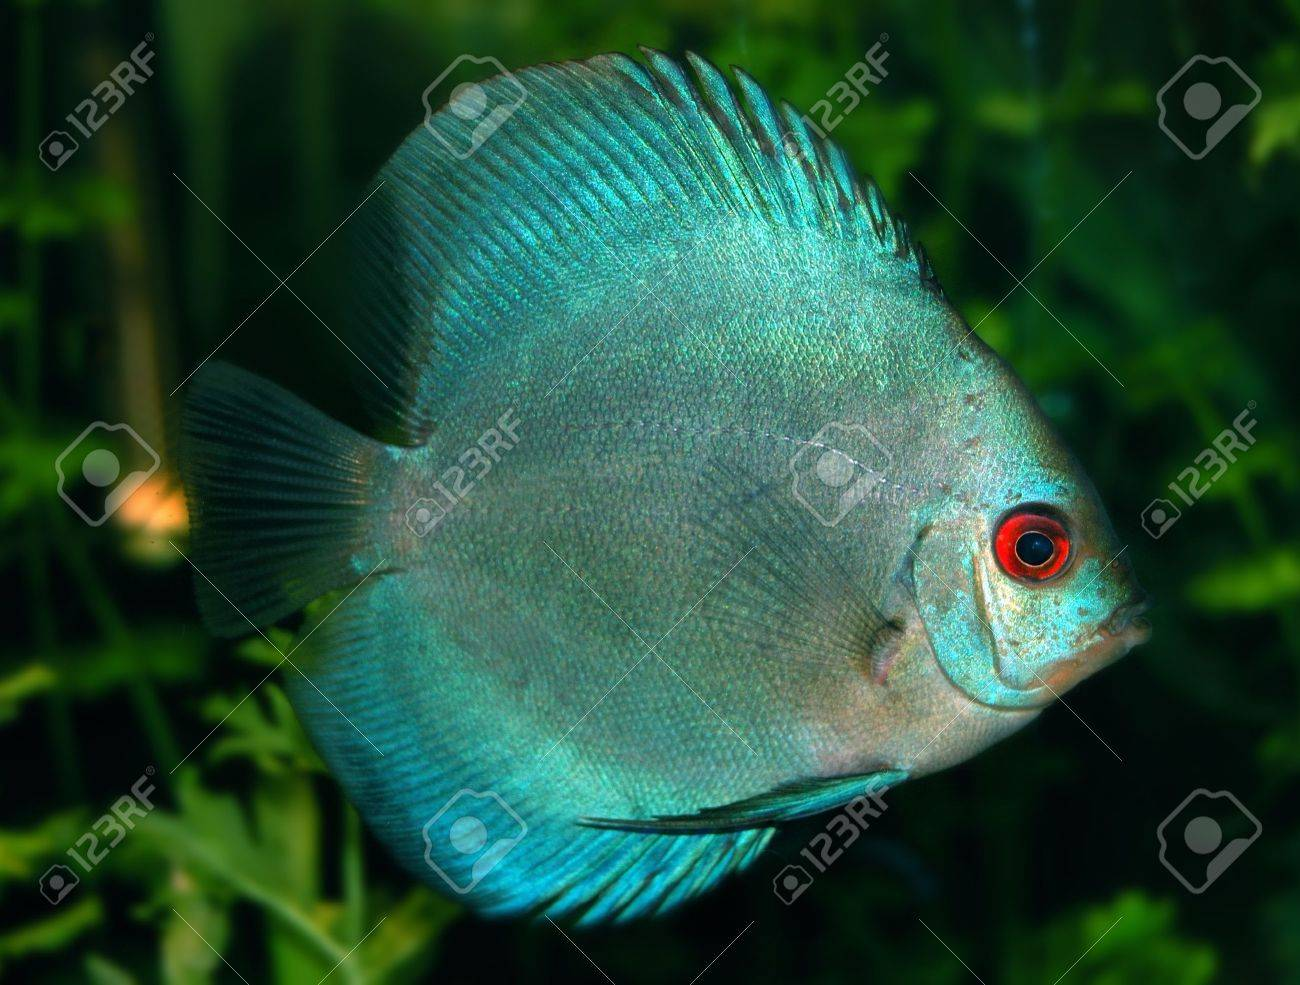 Freshwater fish amazon - Freshwater Cichlid Fishes Native To The Amazon River Basin